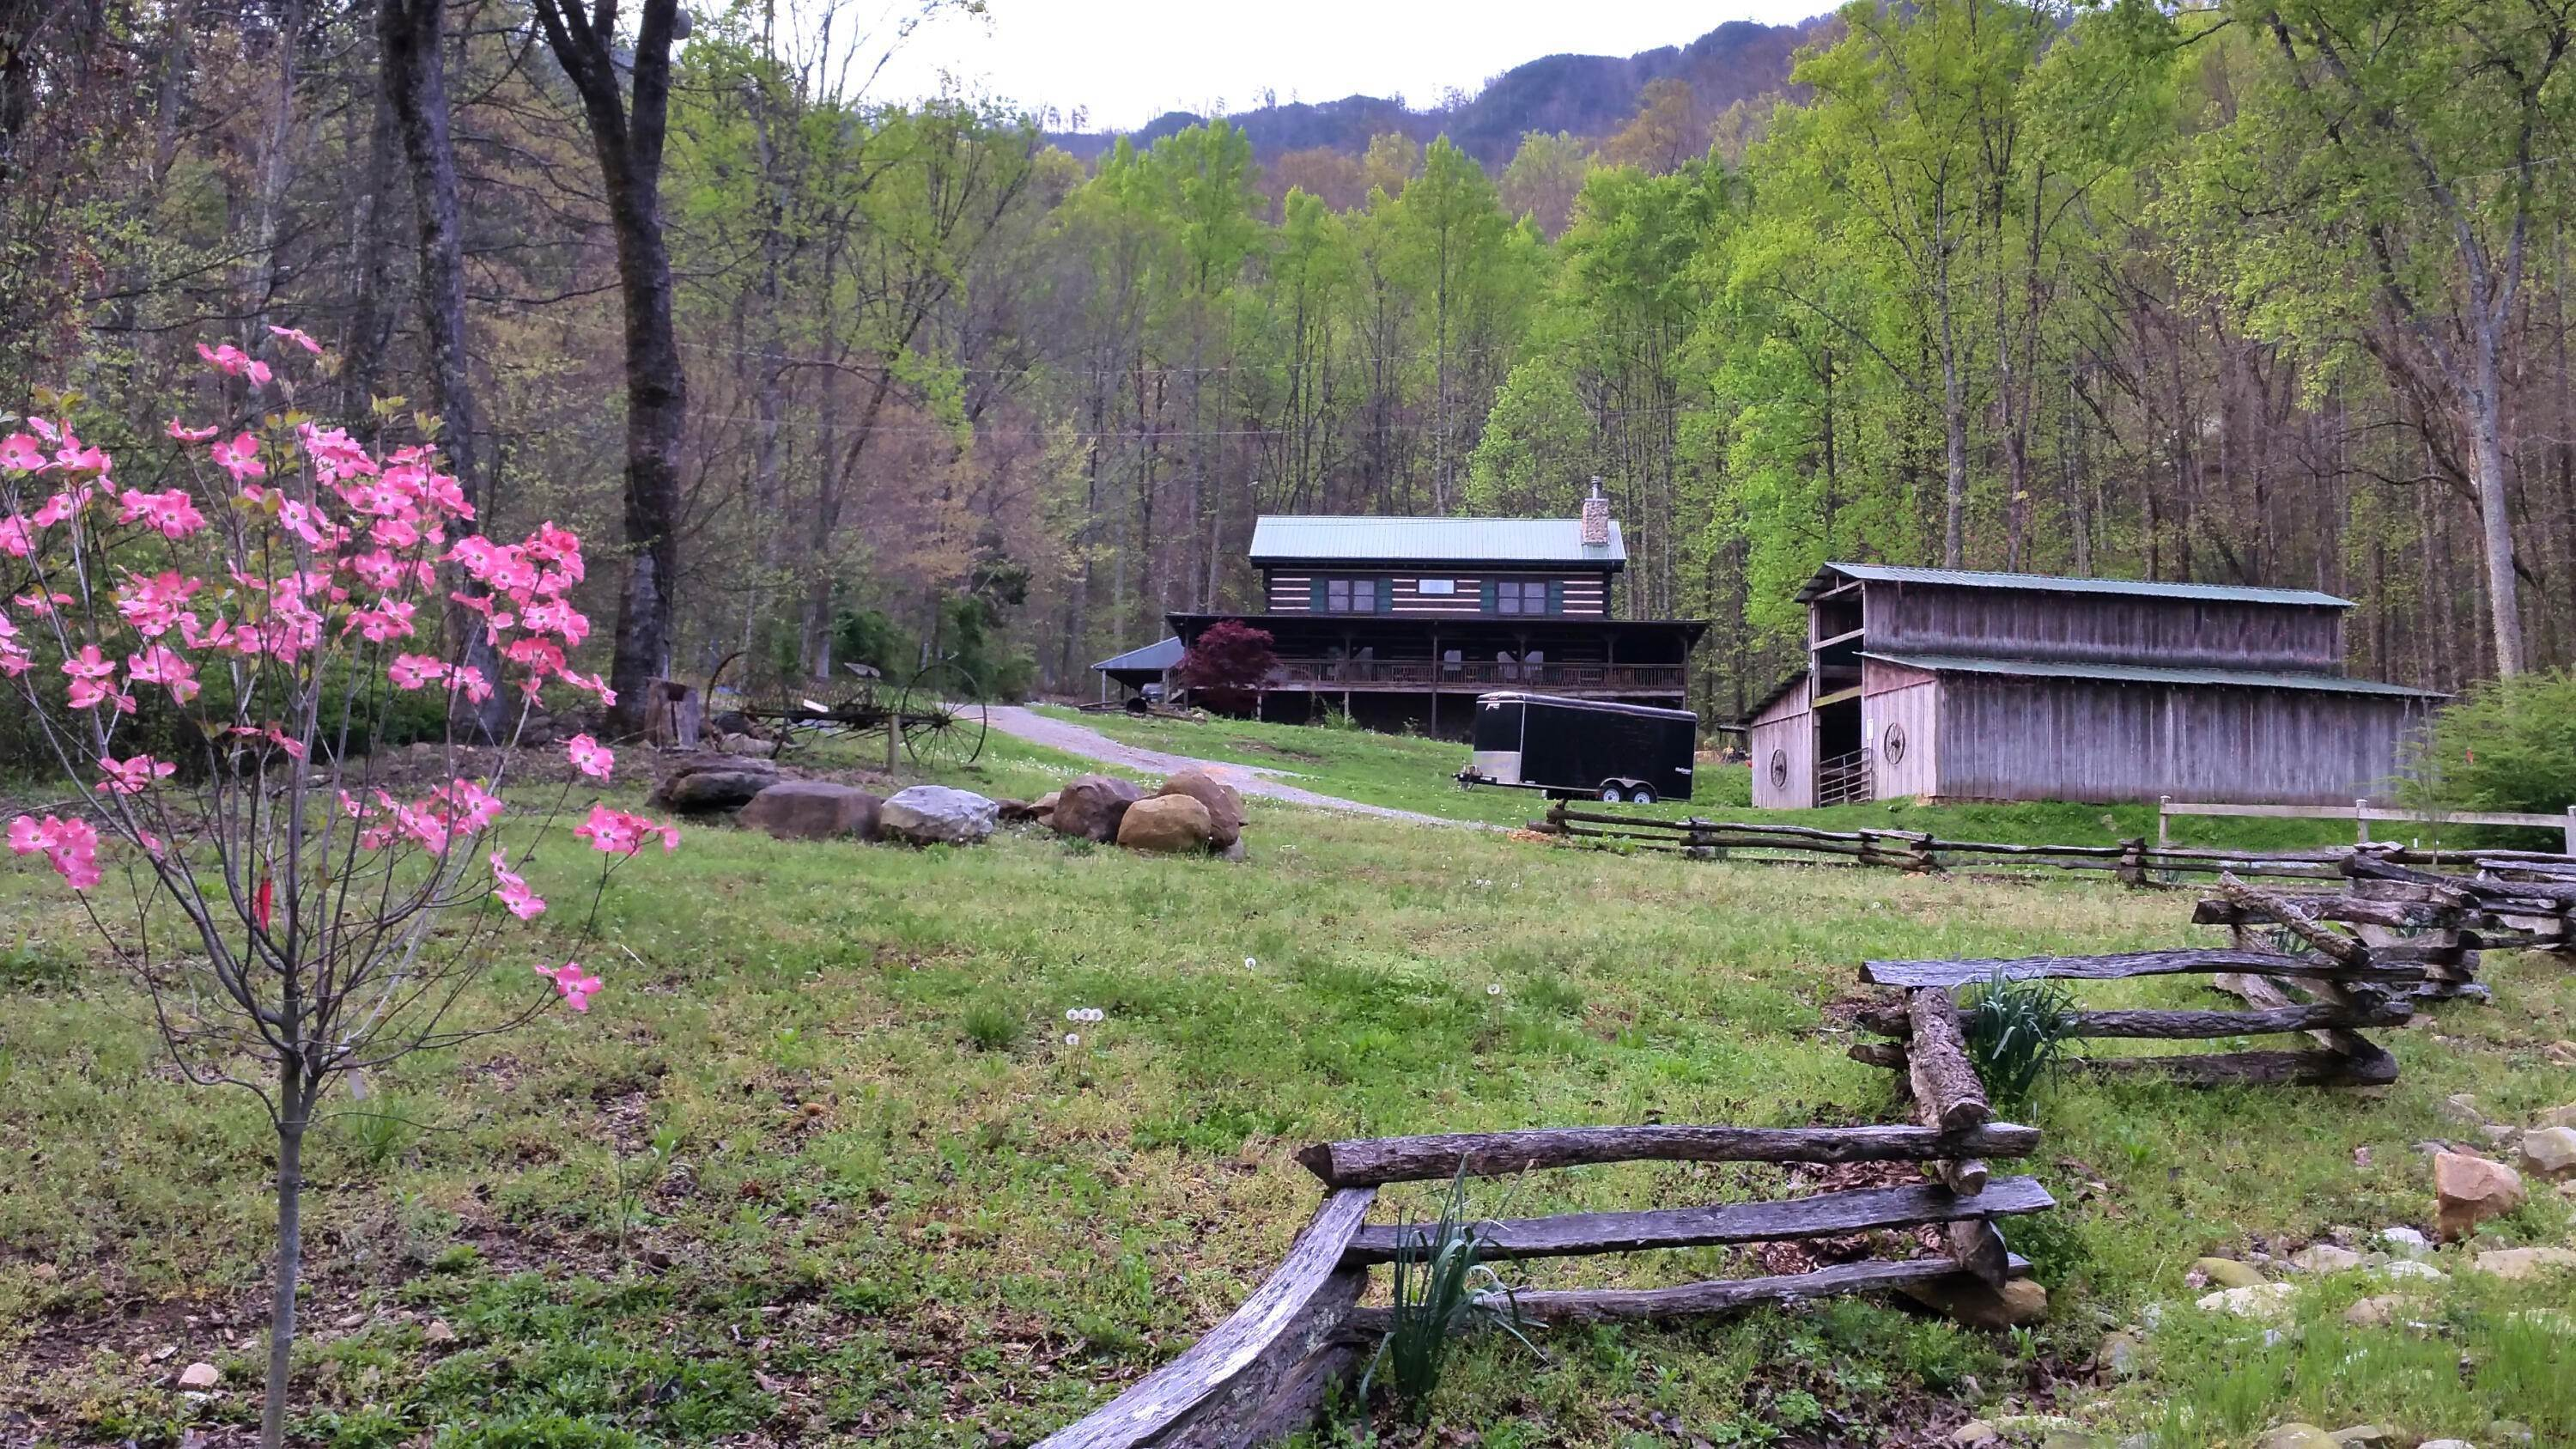 Single Family Homes for Sale at 1157 Sugarloaf Mountain Road Road Seymour, Tennessee 37865 United States